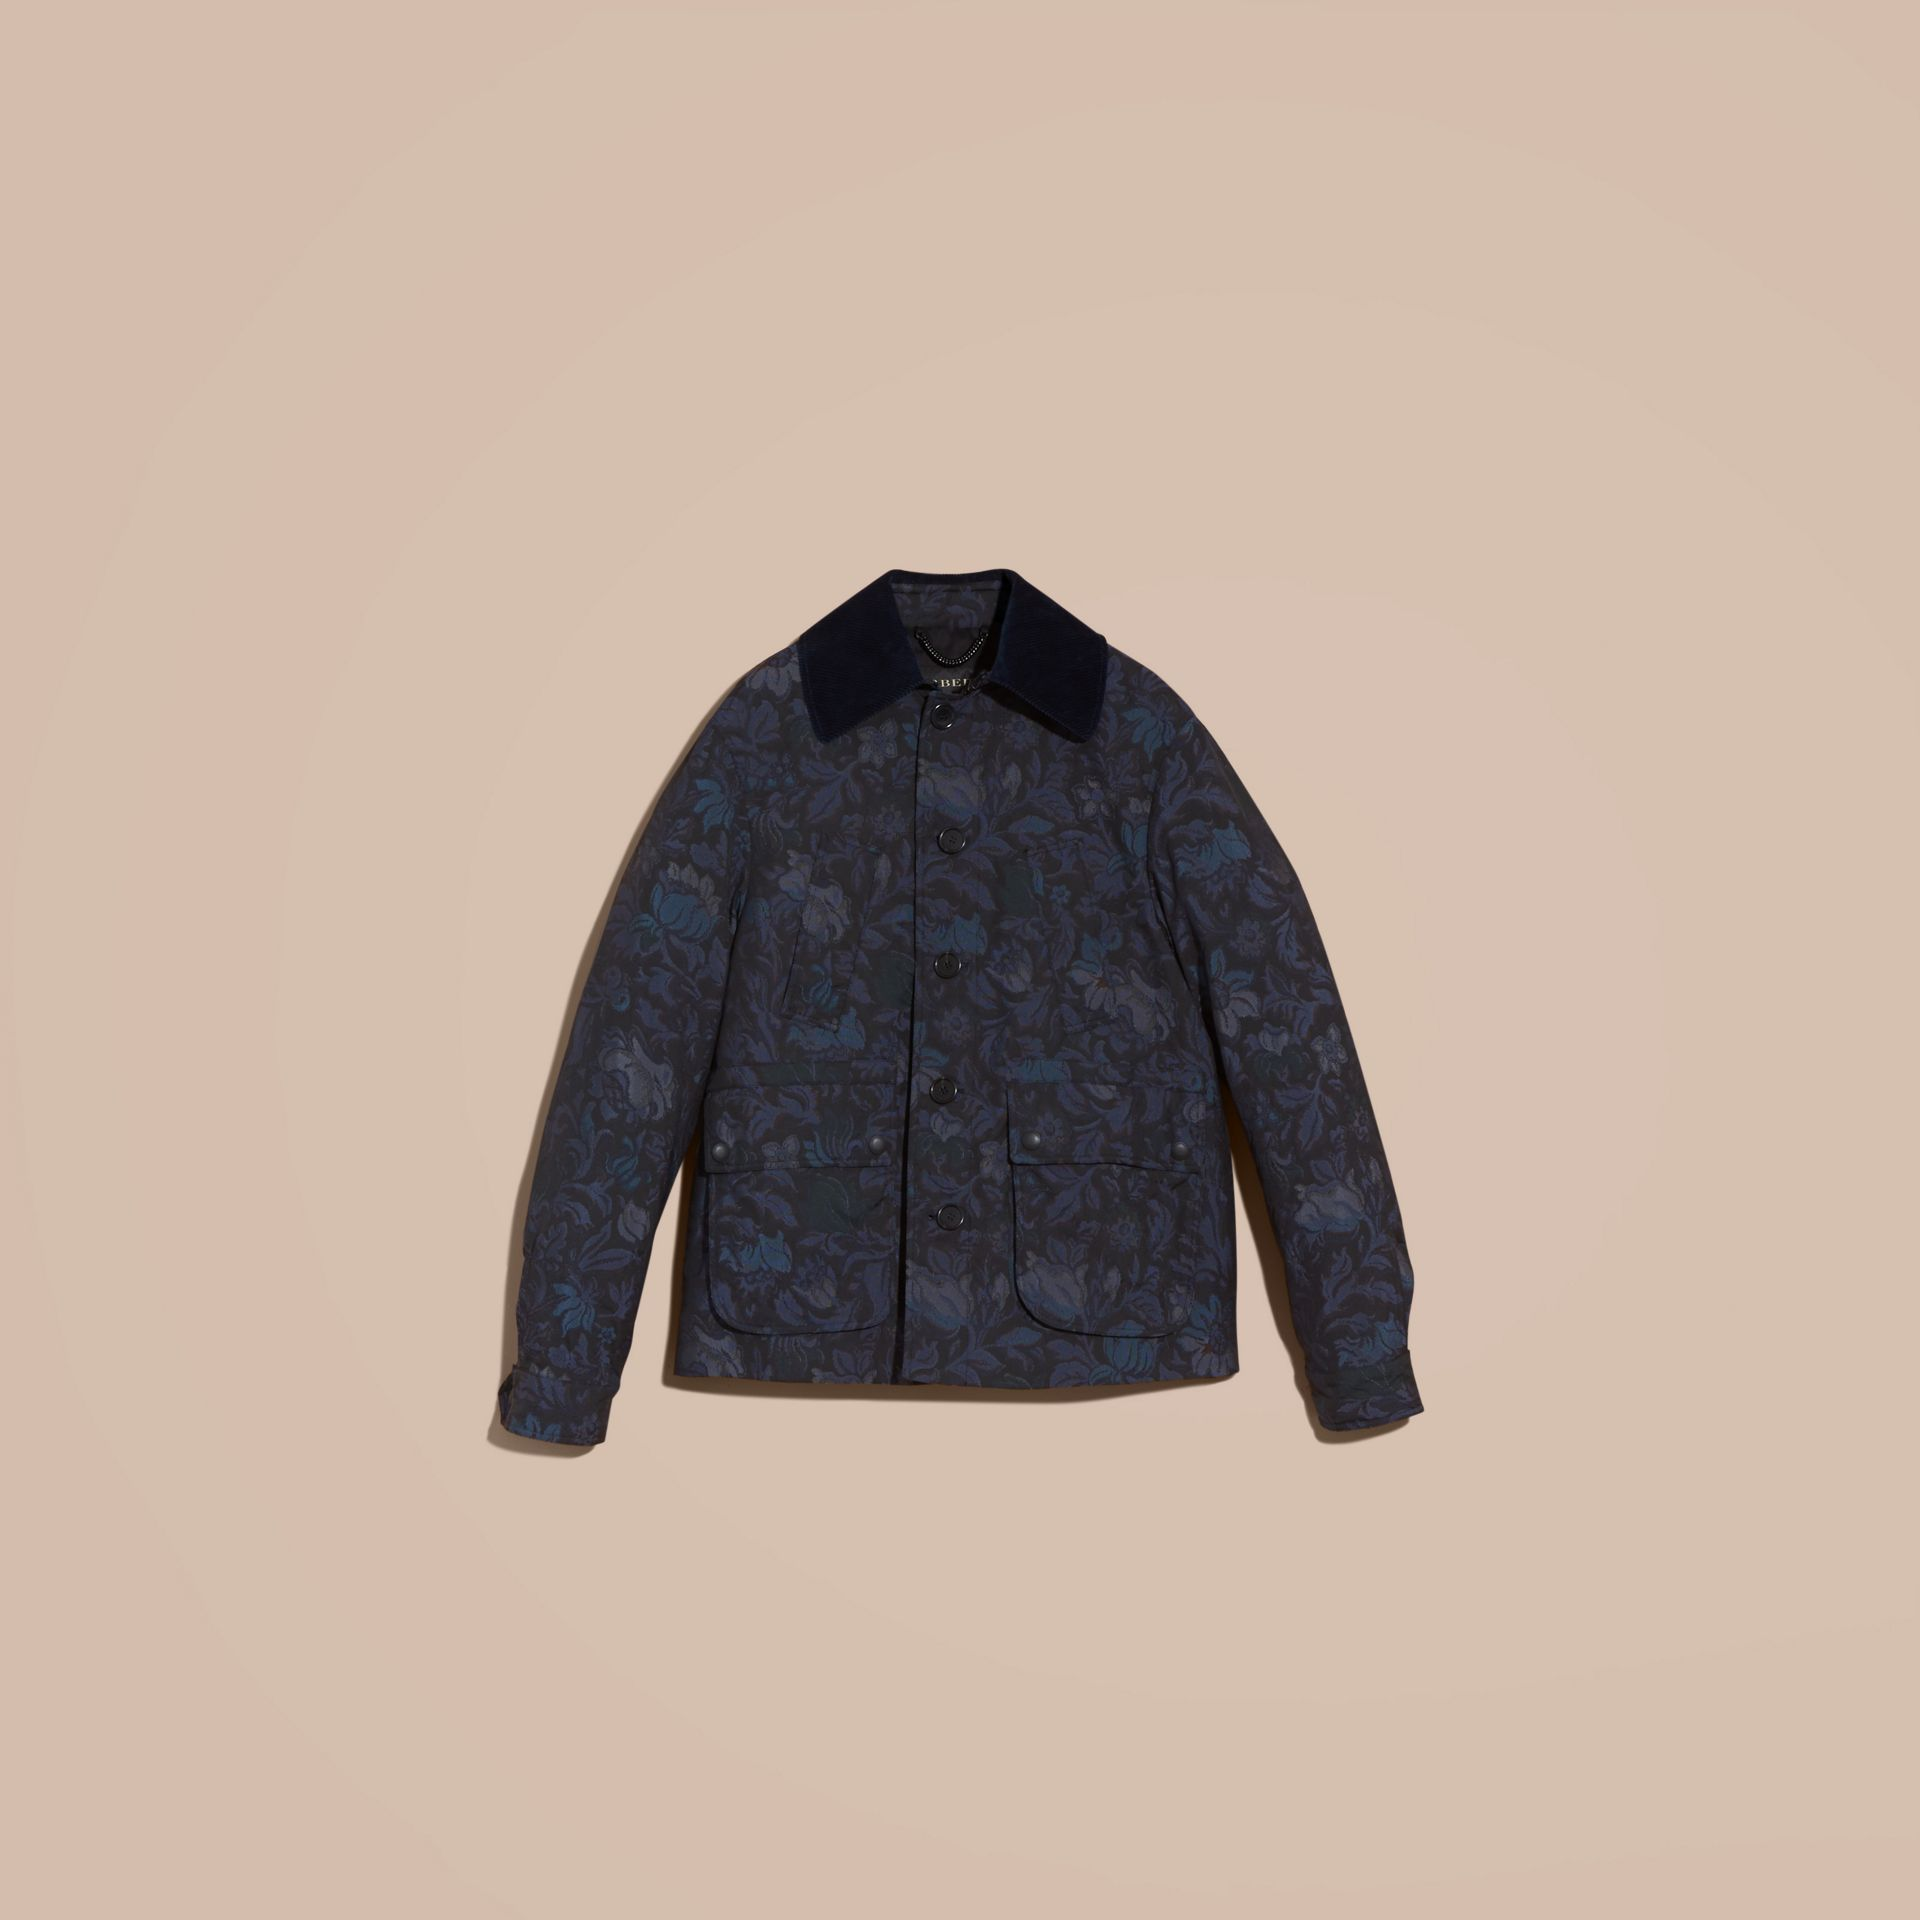 Floral Jacquard Field Jacket with Corduroy Collar - gallery image 4